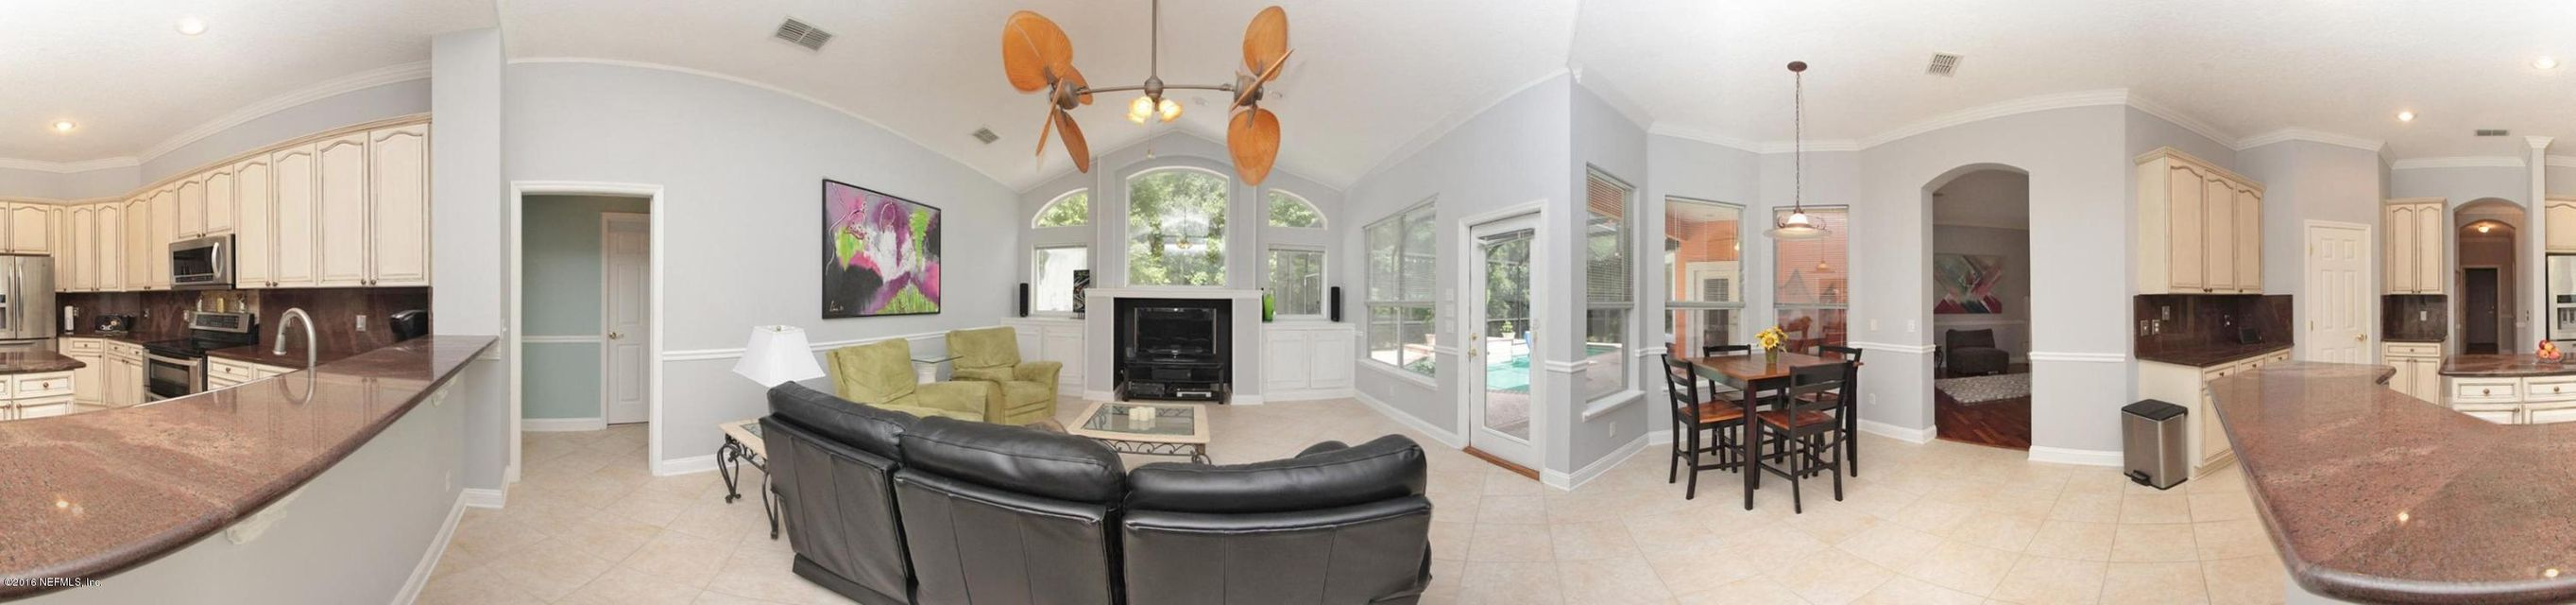 3060 COUNTRY CLUB,ORANGE PARK,FLORIDA 32073,4 Bedrooms Bedrooms,3 BathroomsBathrooms,Residential - single family,COUNTRY CLUB,847990